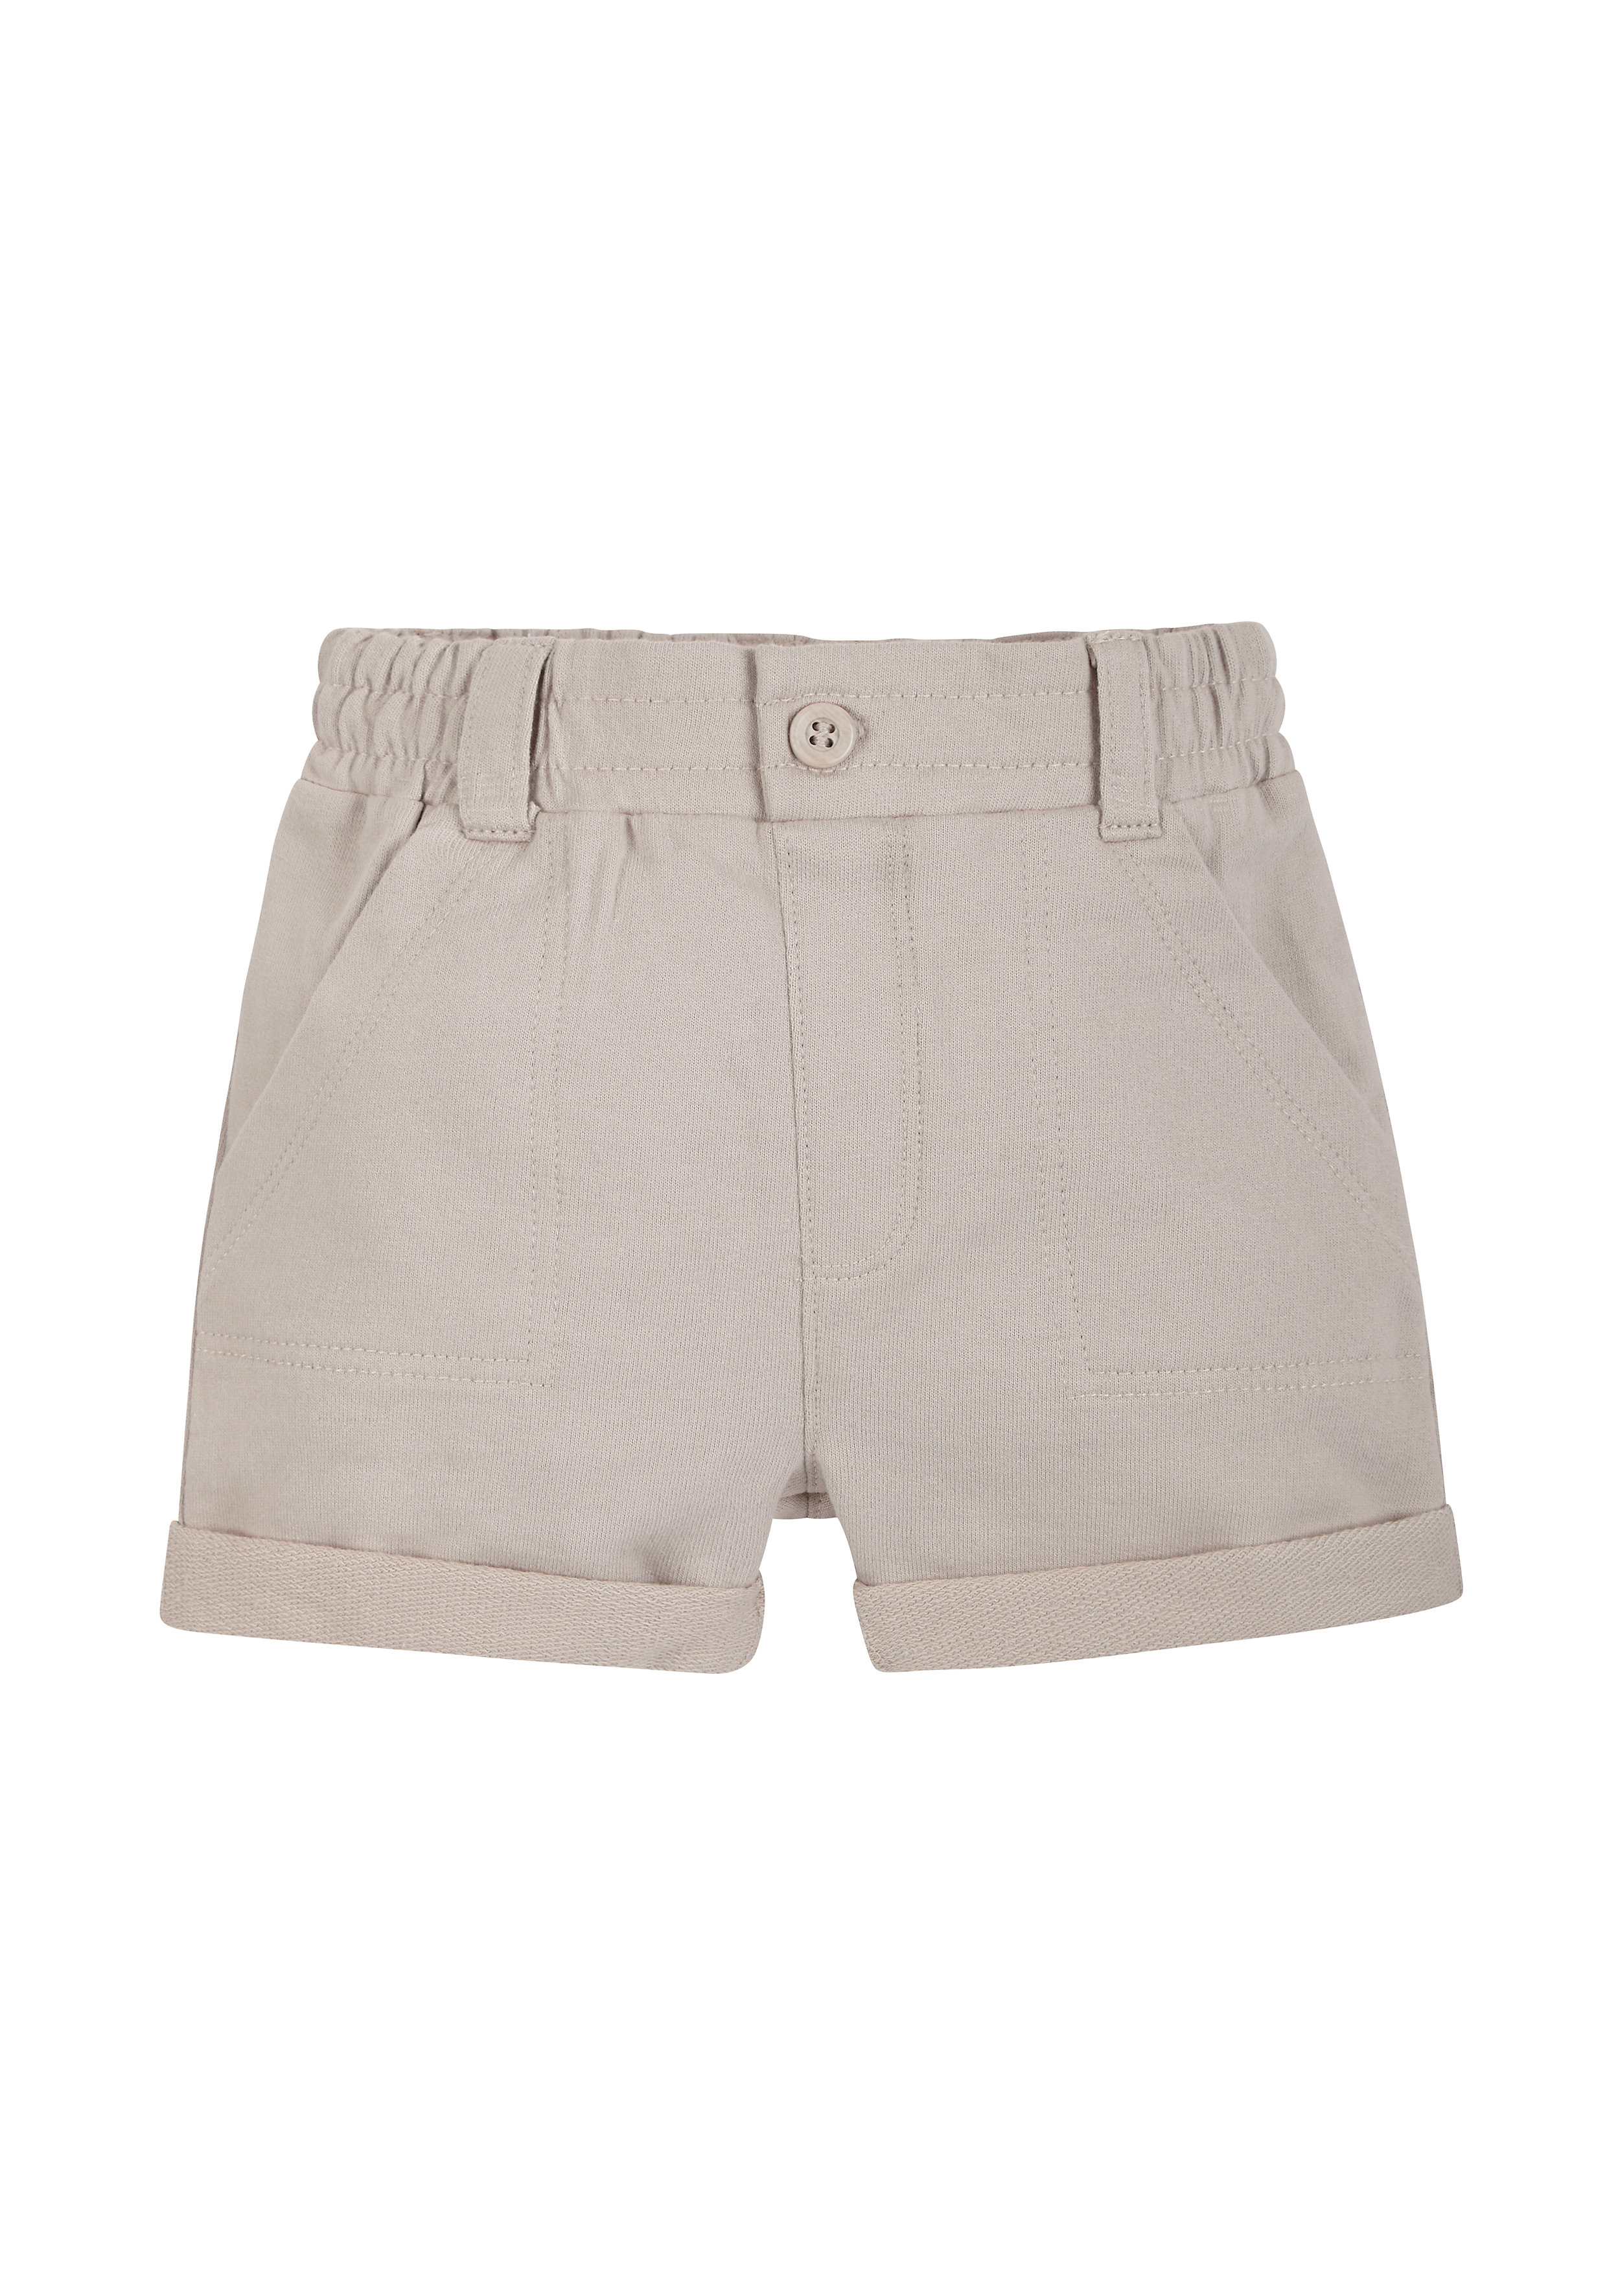 Mothercare | Boys Shorts - Beige